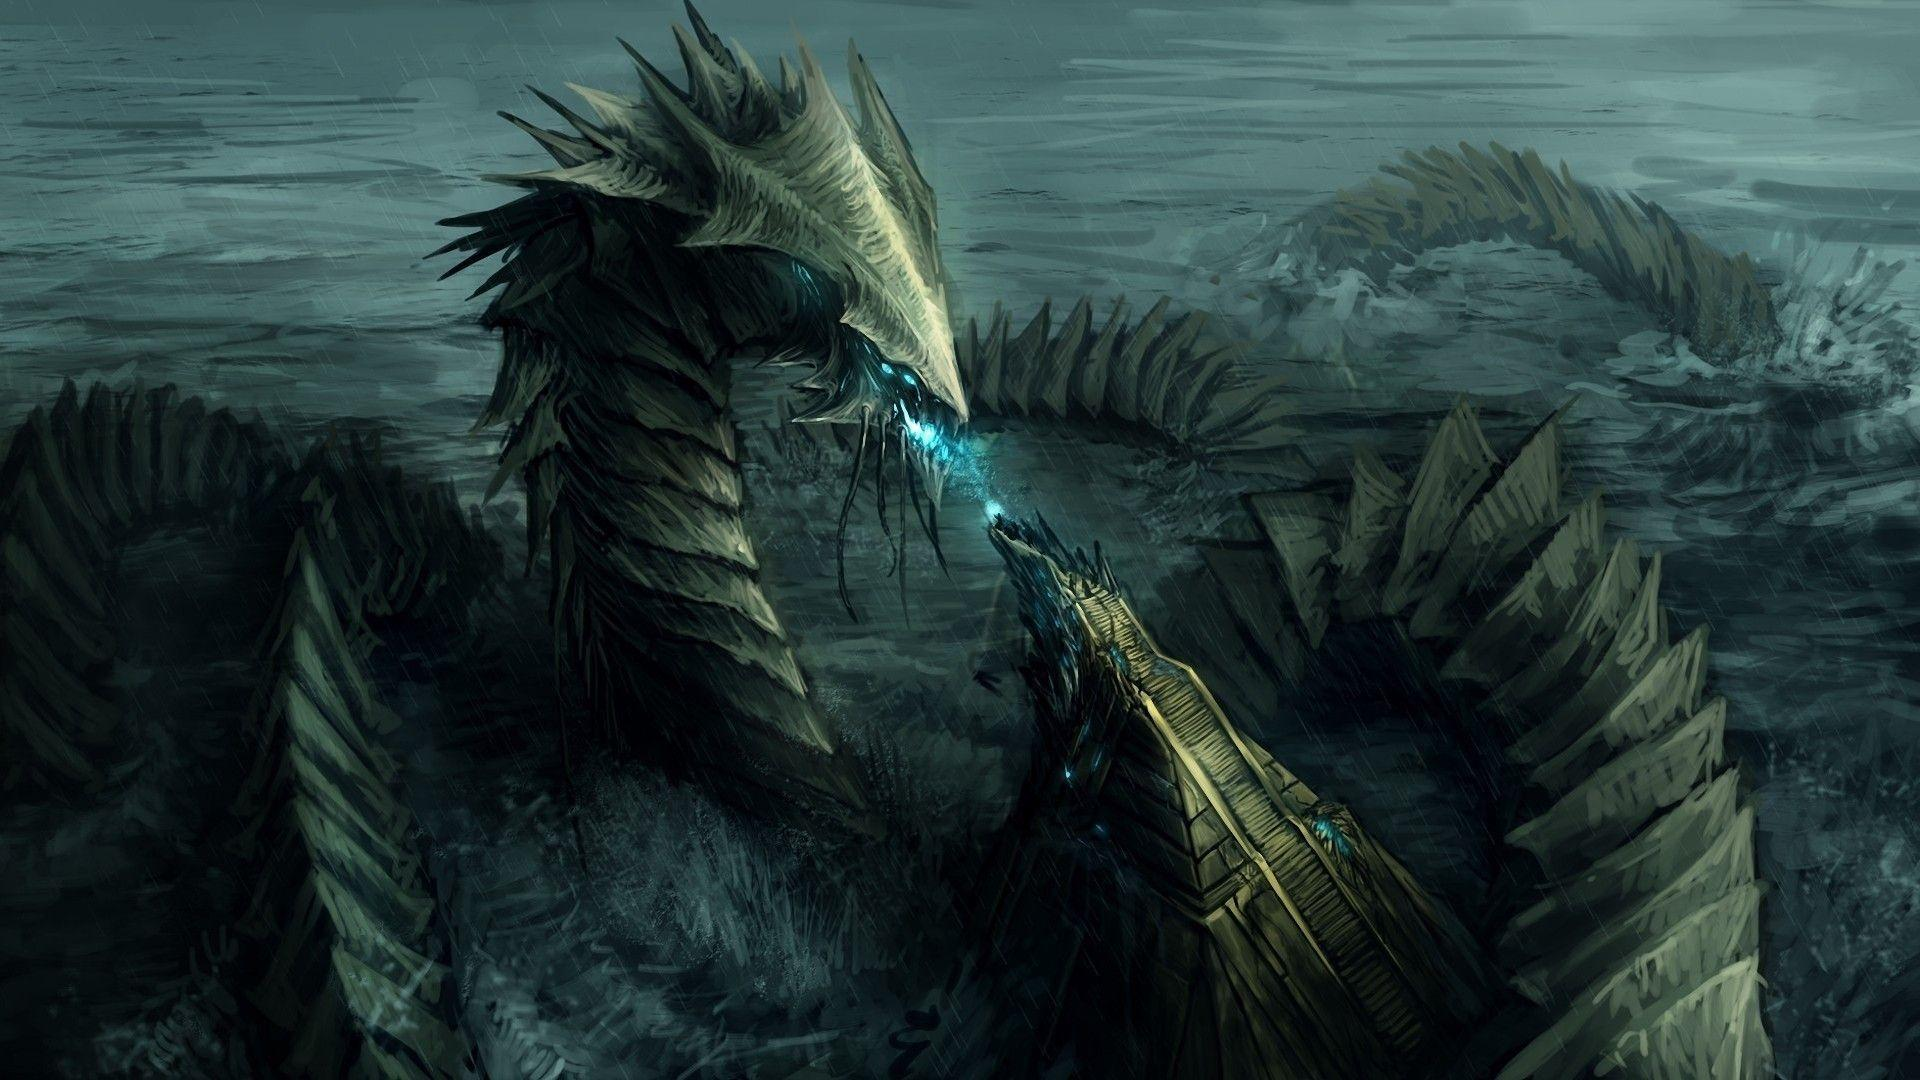 Water Dragon Wallpapers - Wallpaper Cave